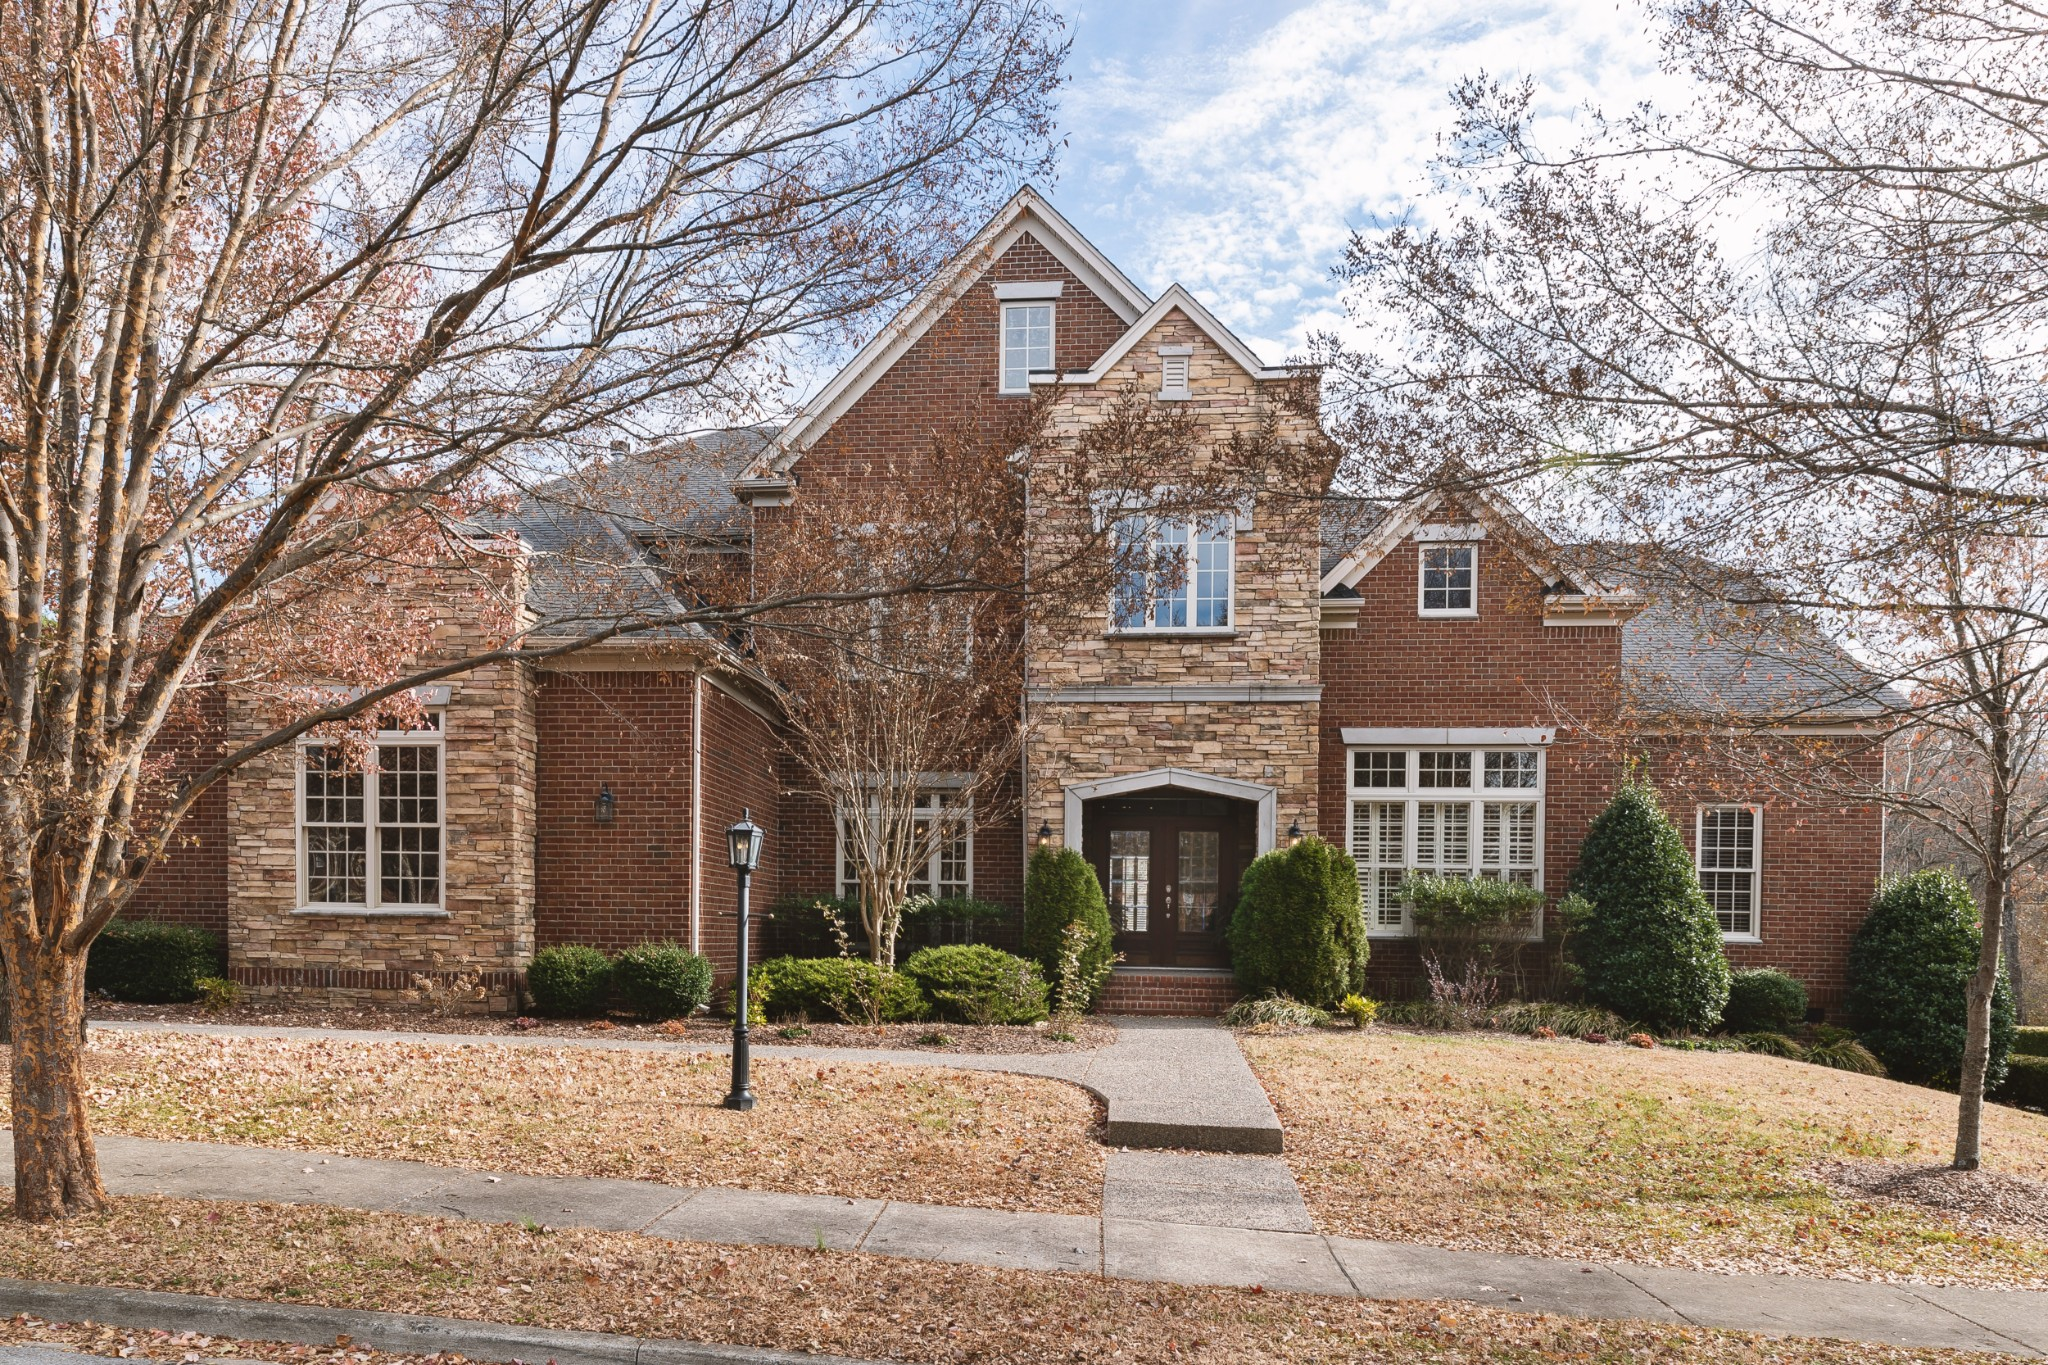 $749,900 - 5Br/4Ba -  for Sale in Mckay's Mill/hadden Hall, Franklin